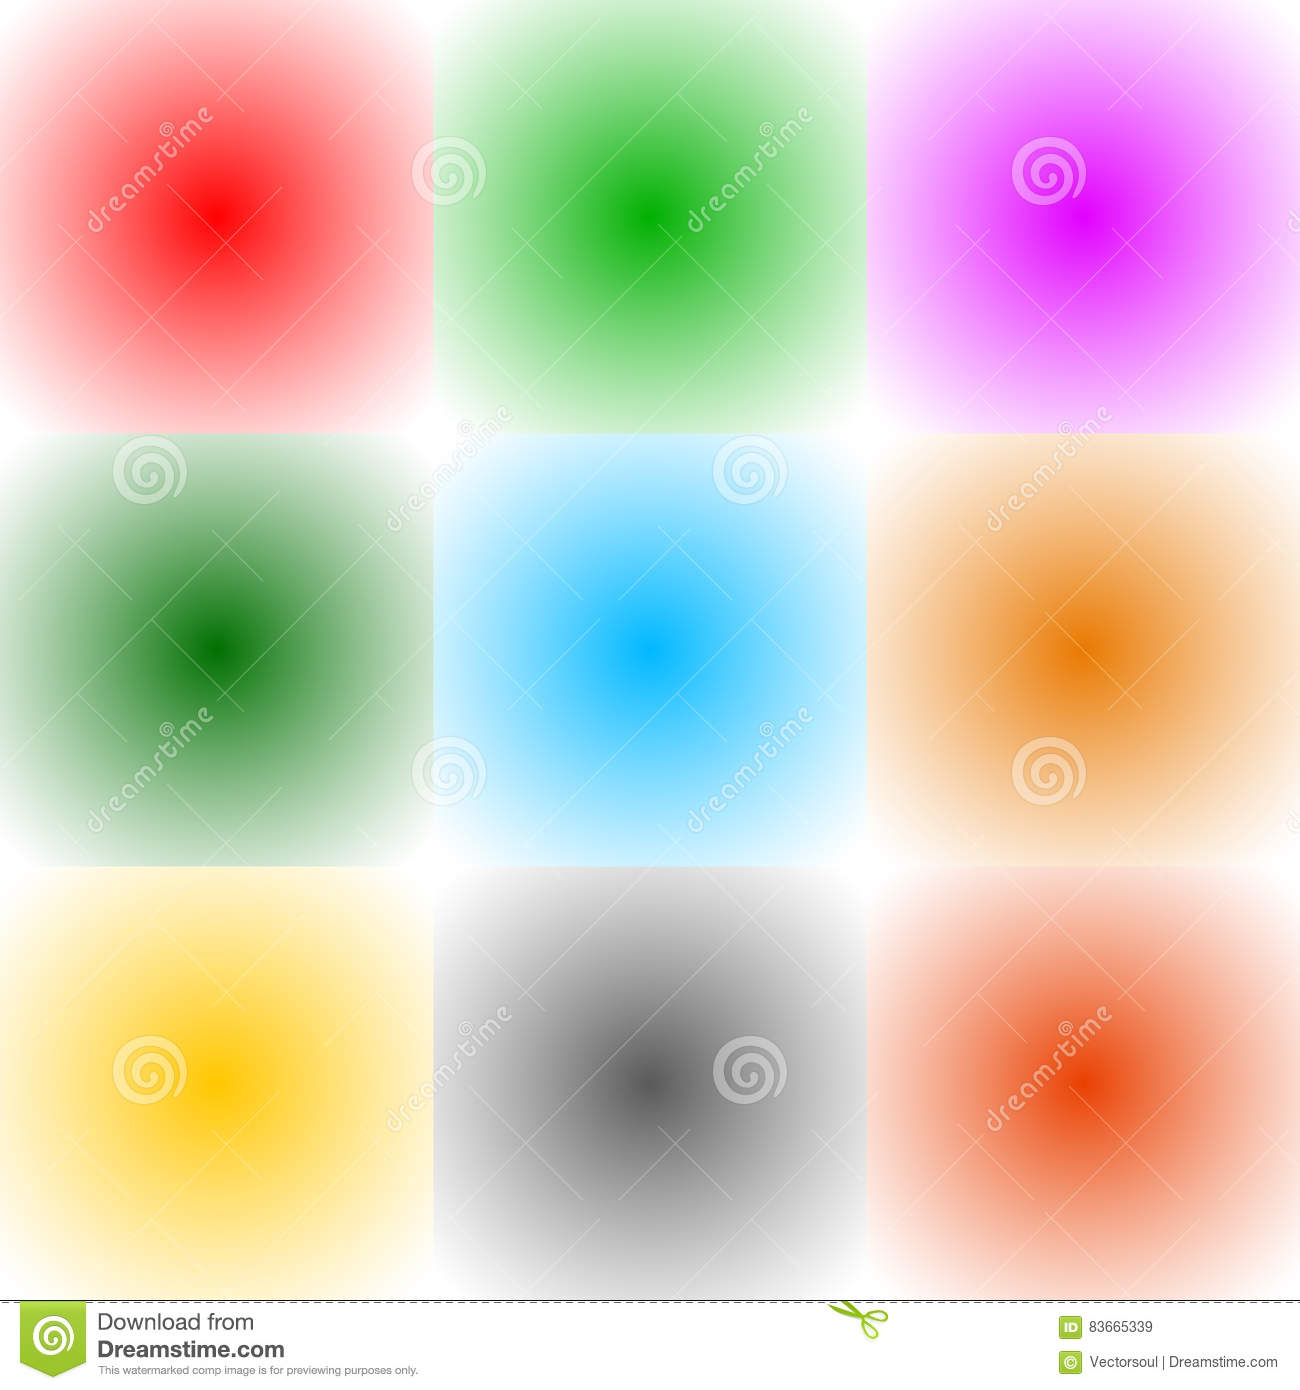 9 radial gradient monochrome square format backgrounds backdro